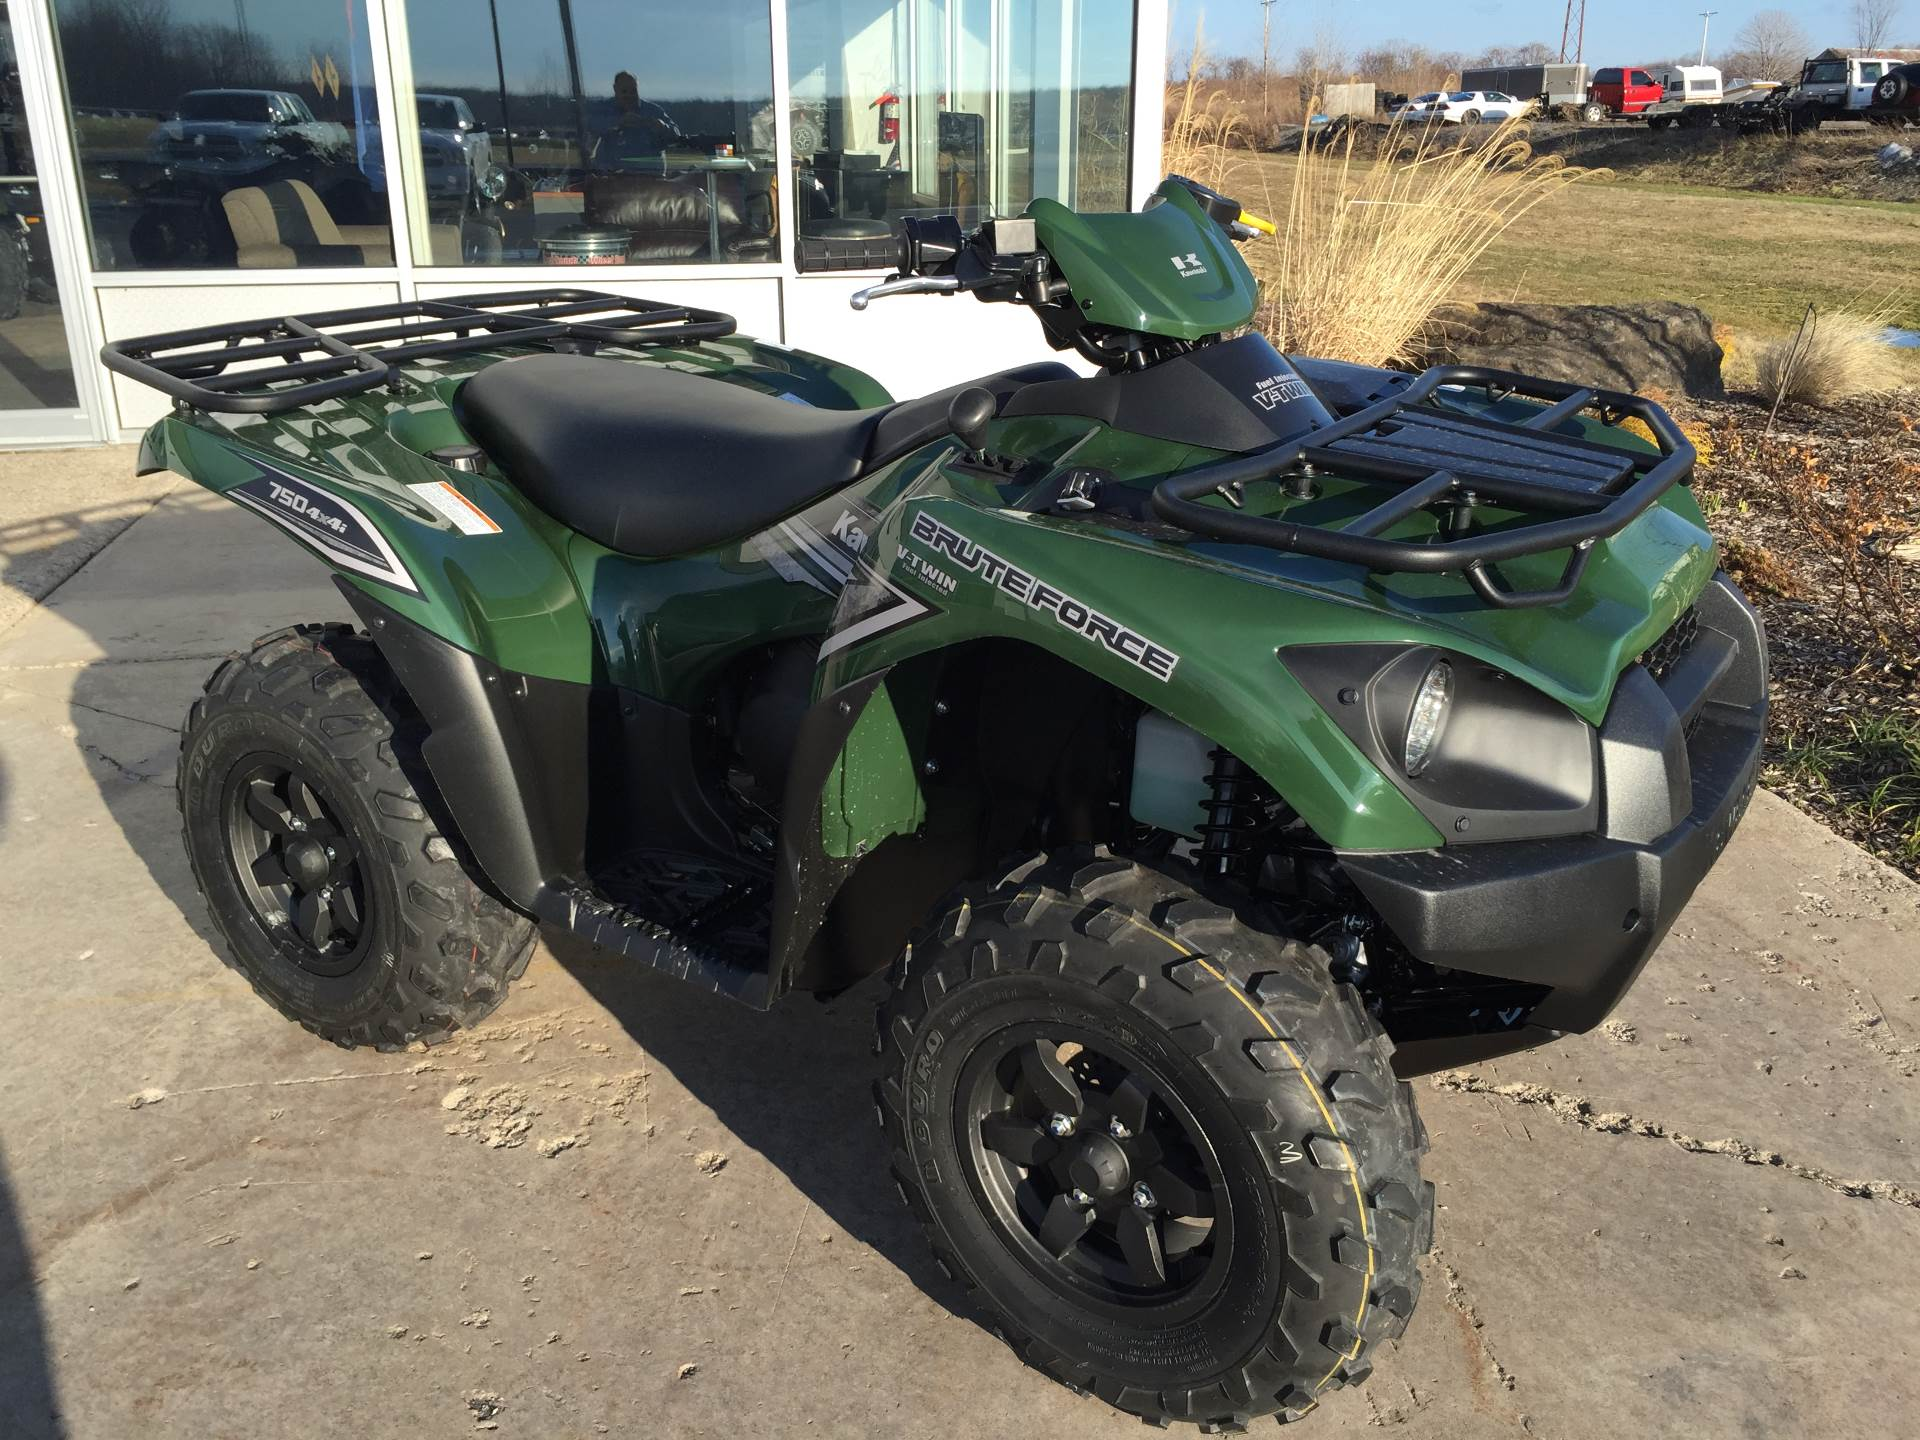 2017 Kawasaki Brute Force 750 4x4i in Brewerton, New York